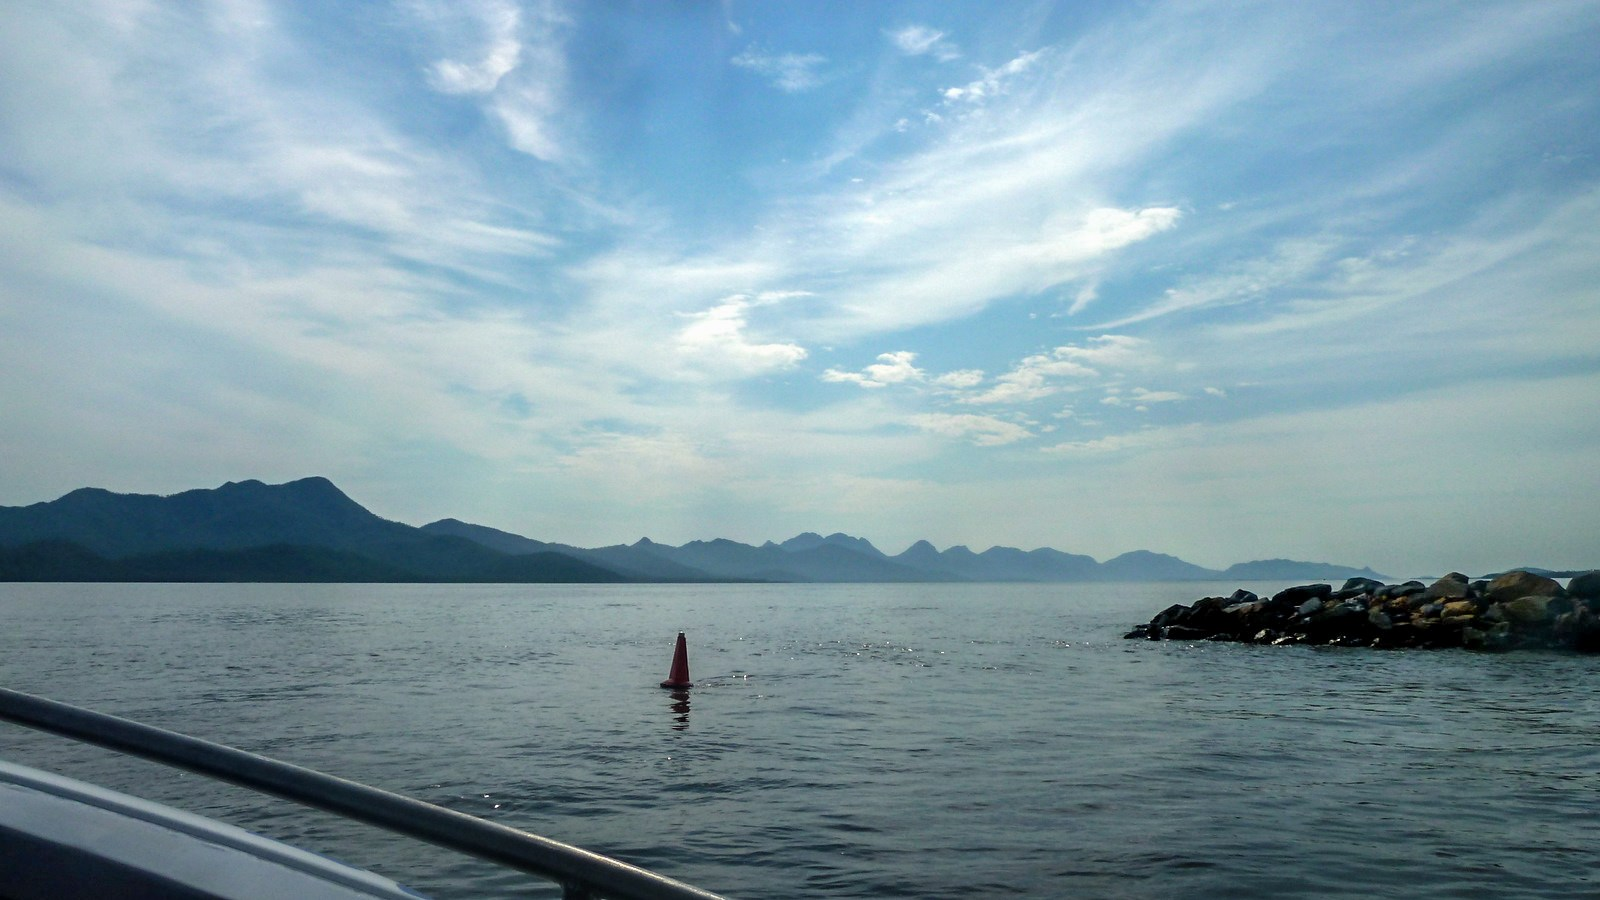 this is a photo of hinchinbrook island taken from the boat ferry